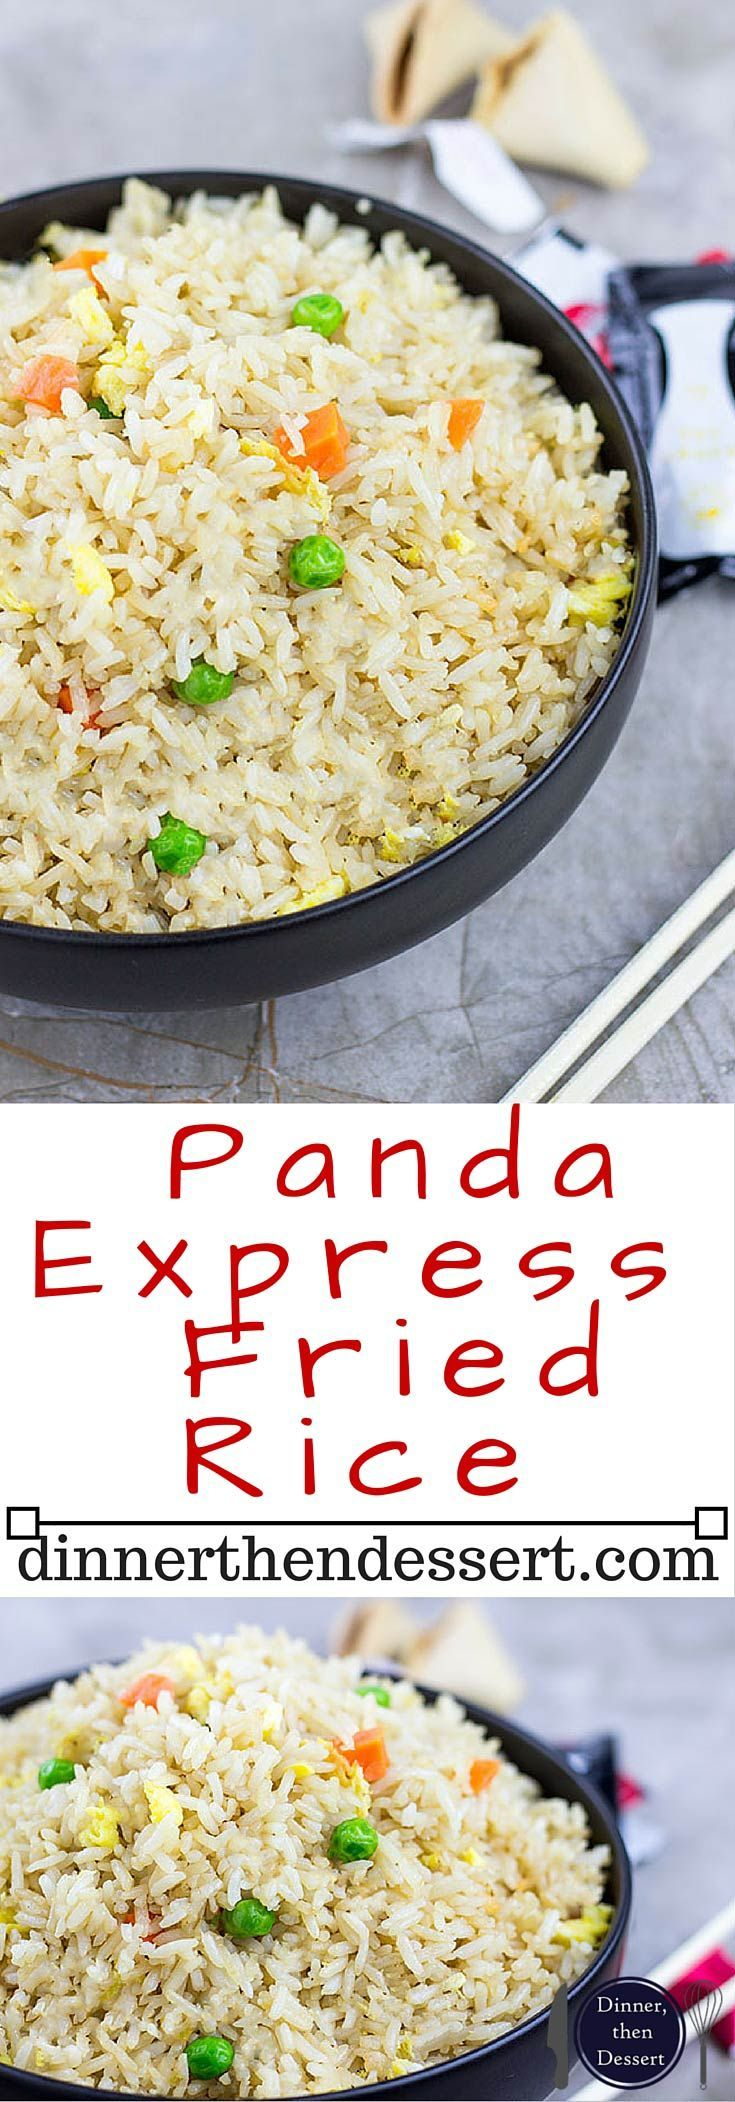 Panda Express Fried Rice is the most popular side ordered and with good reason. Salty and savory, with veggies mixed in the rice is a great counterpart to your favorite two entree plate...at home! #chinesefoodrecipes